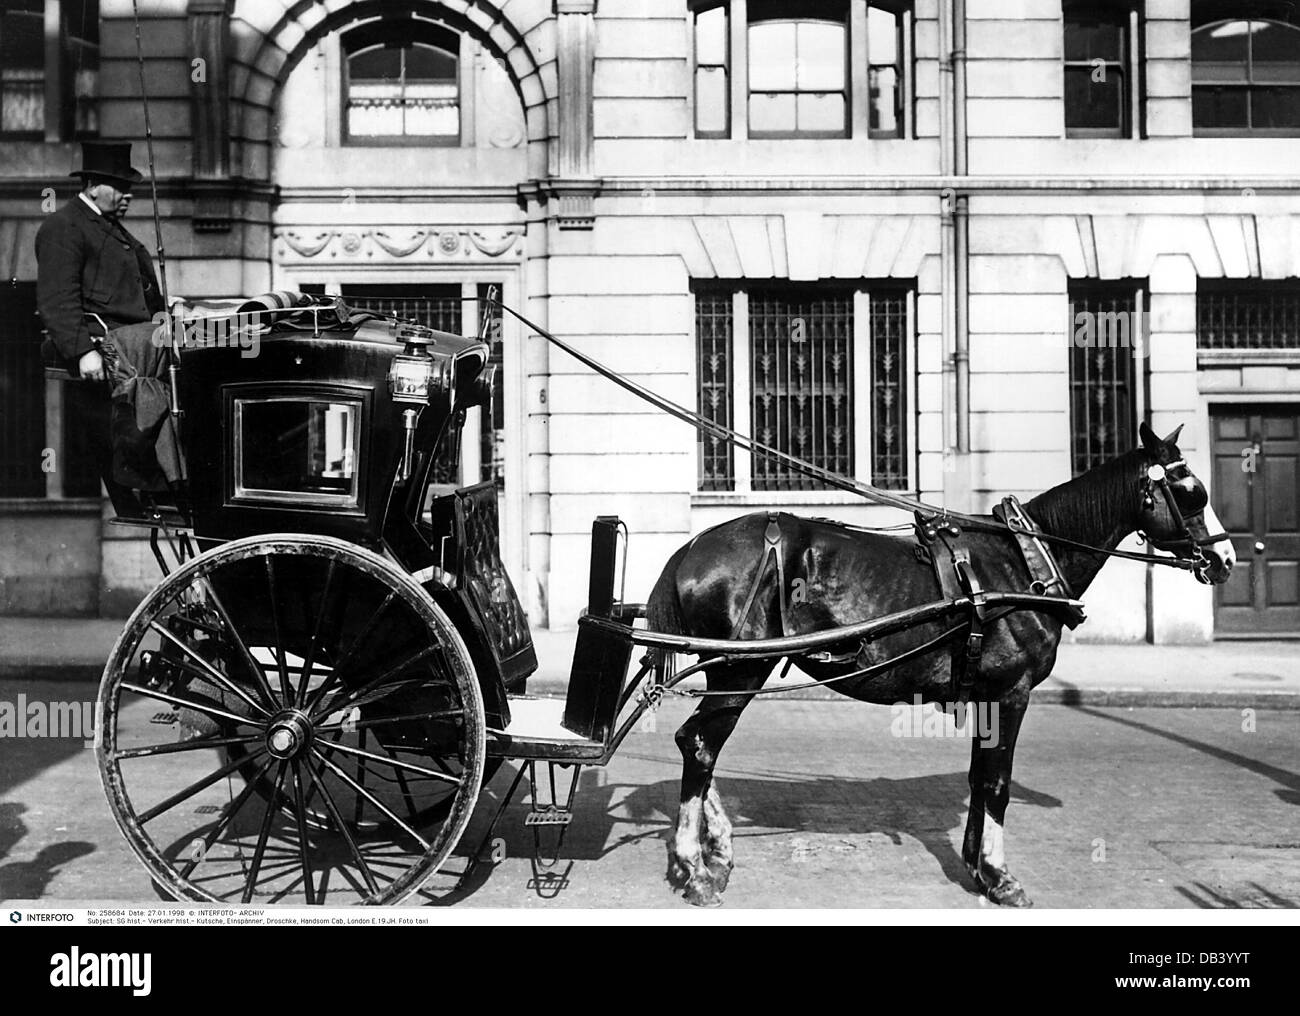 Transport / Transportation, Coach, One-horse Carriage